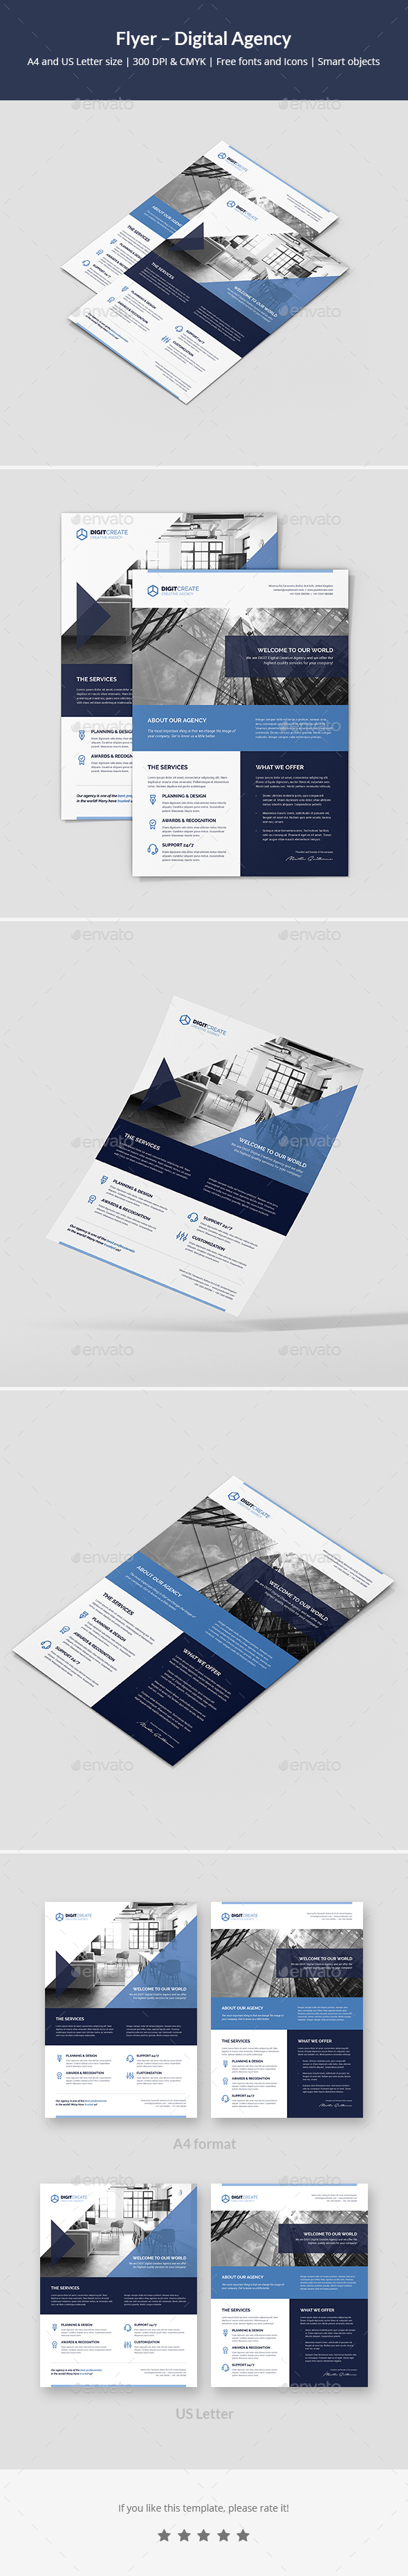 Flyer – Digital Agency - Corporate Flyers